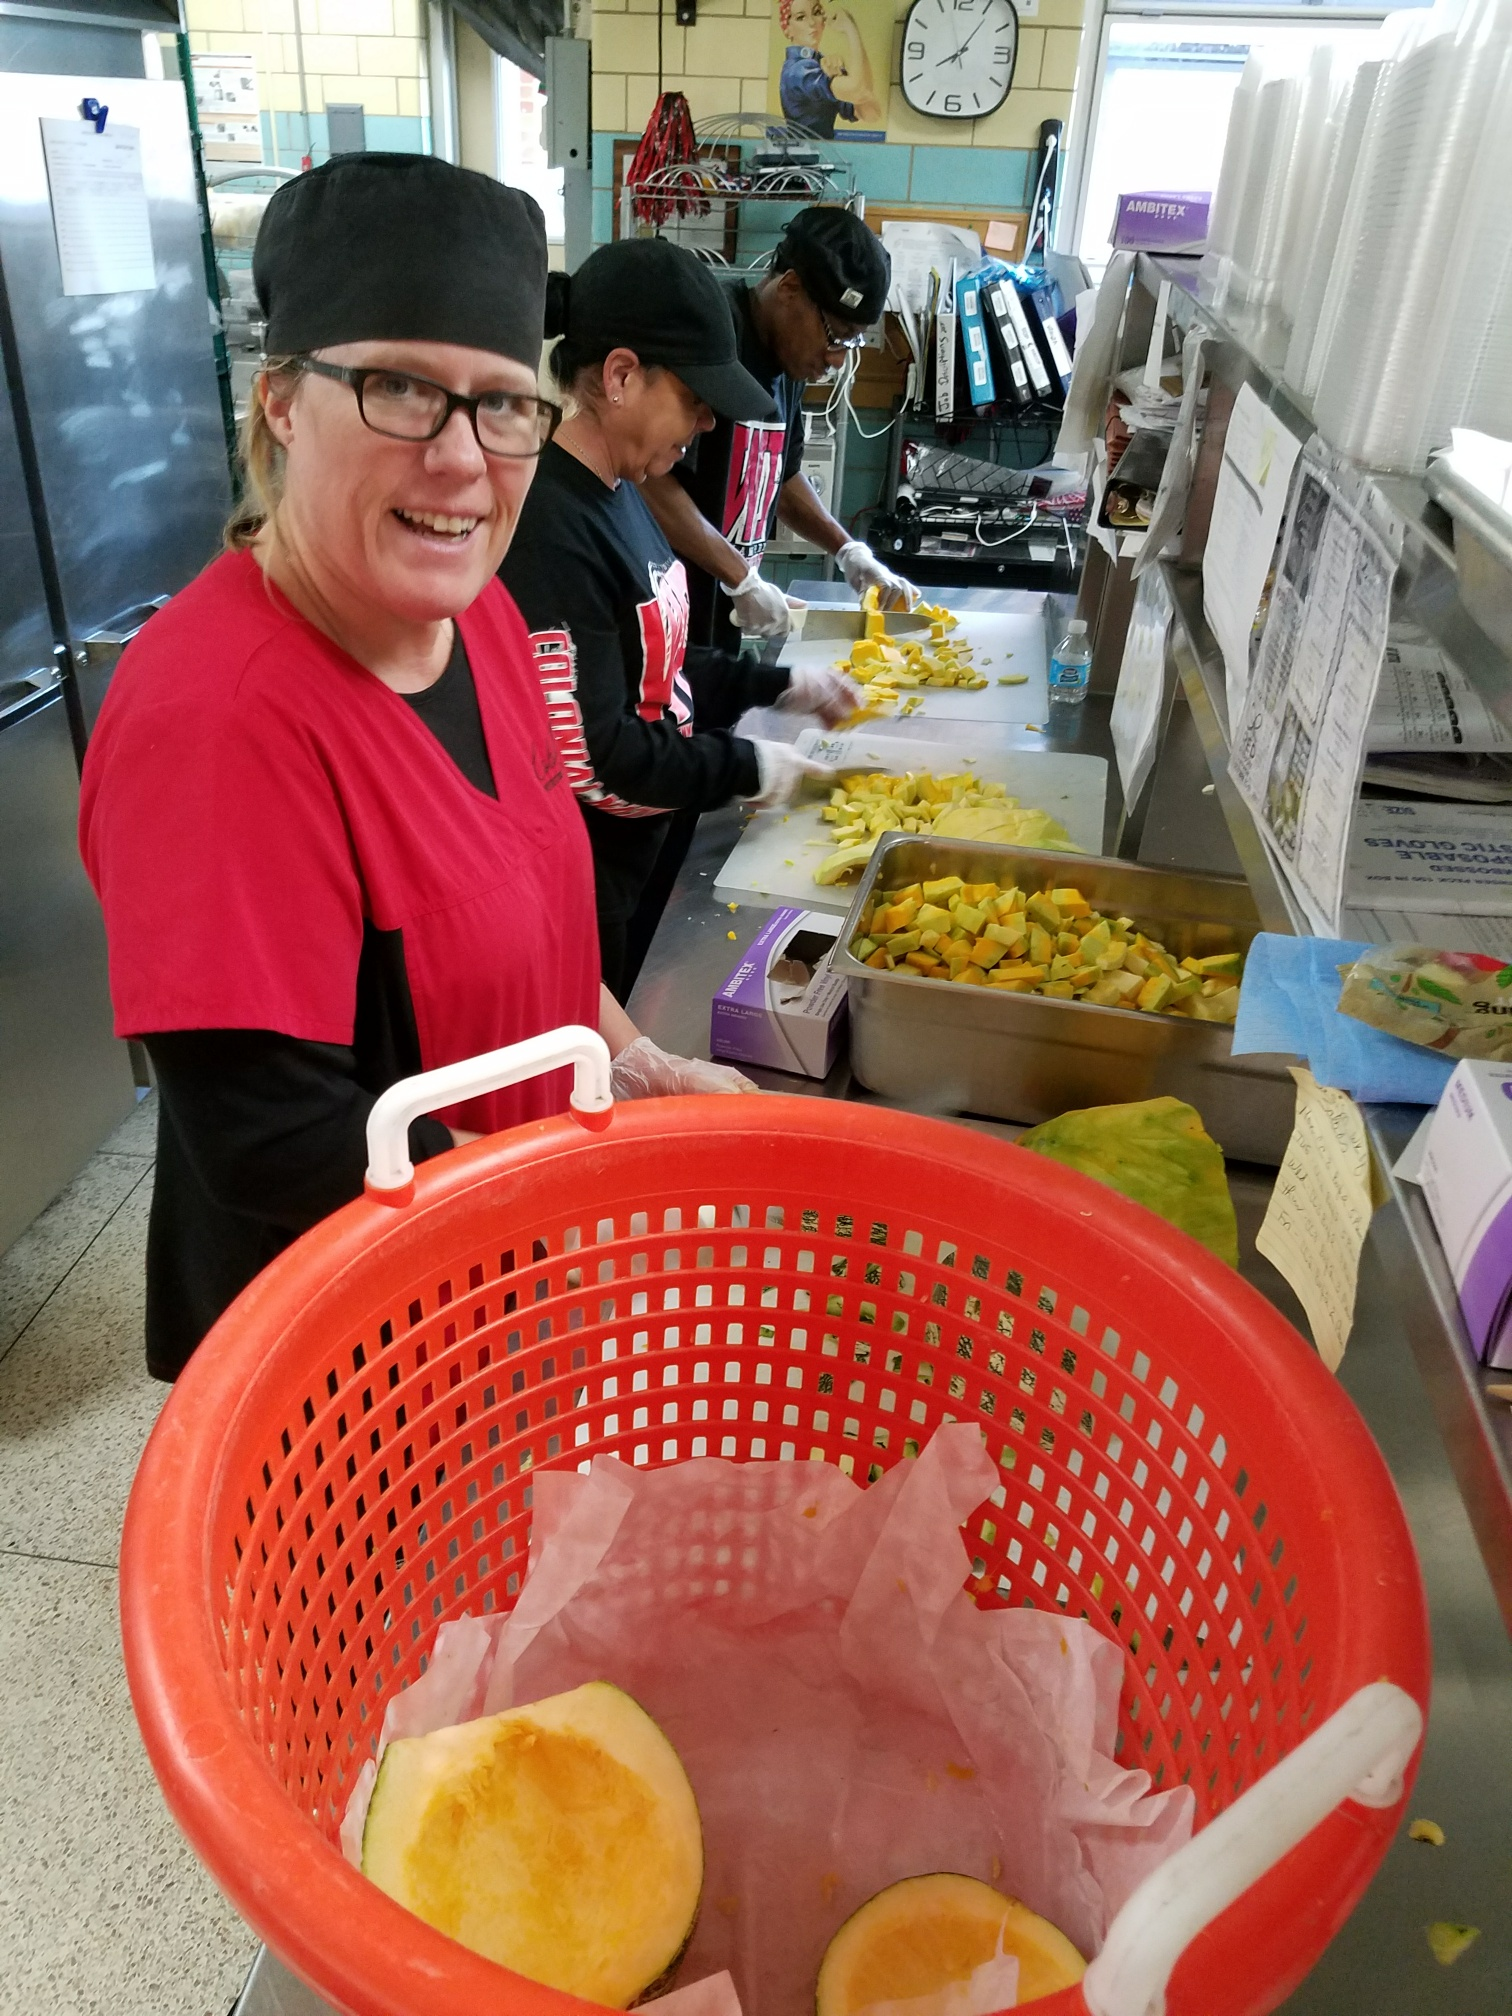 School nutrition worker prepares meals with fresh sqaush